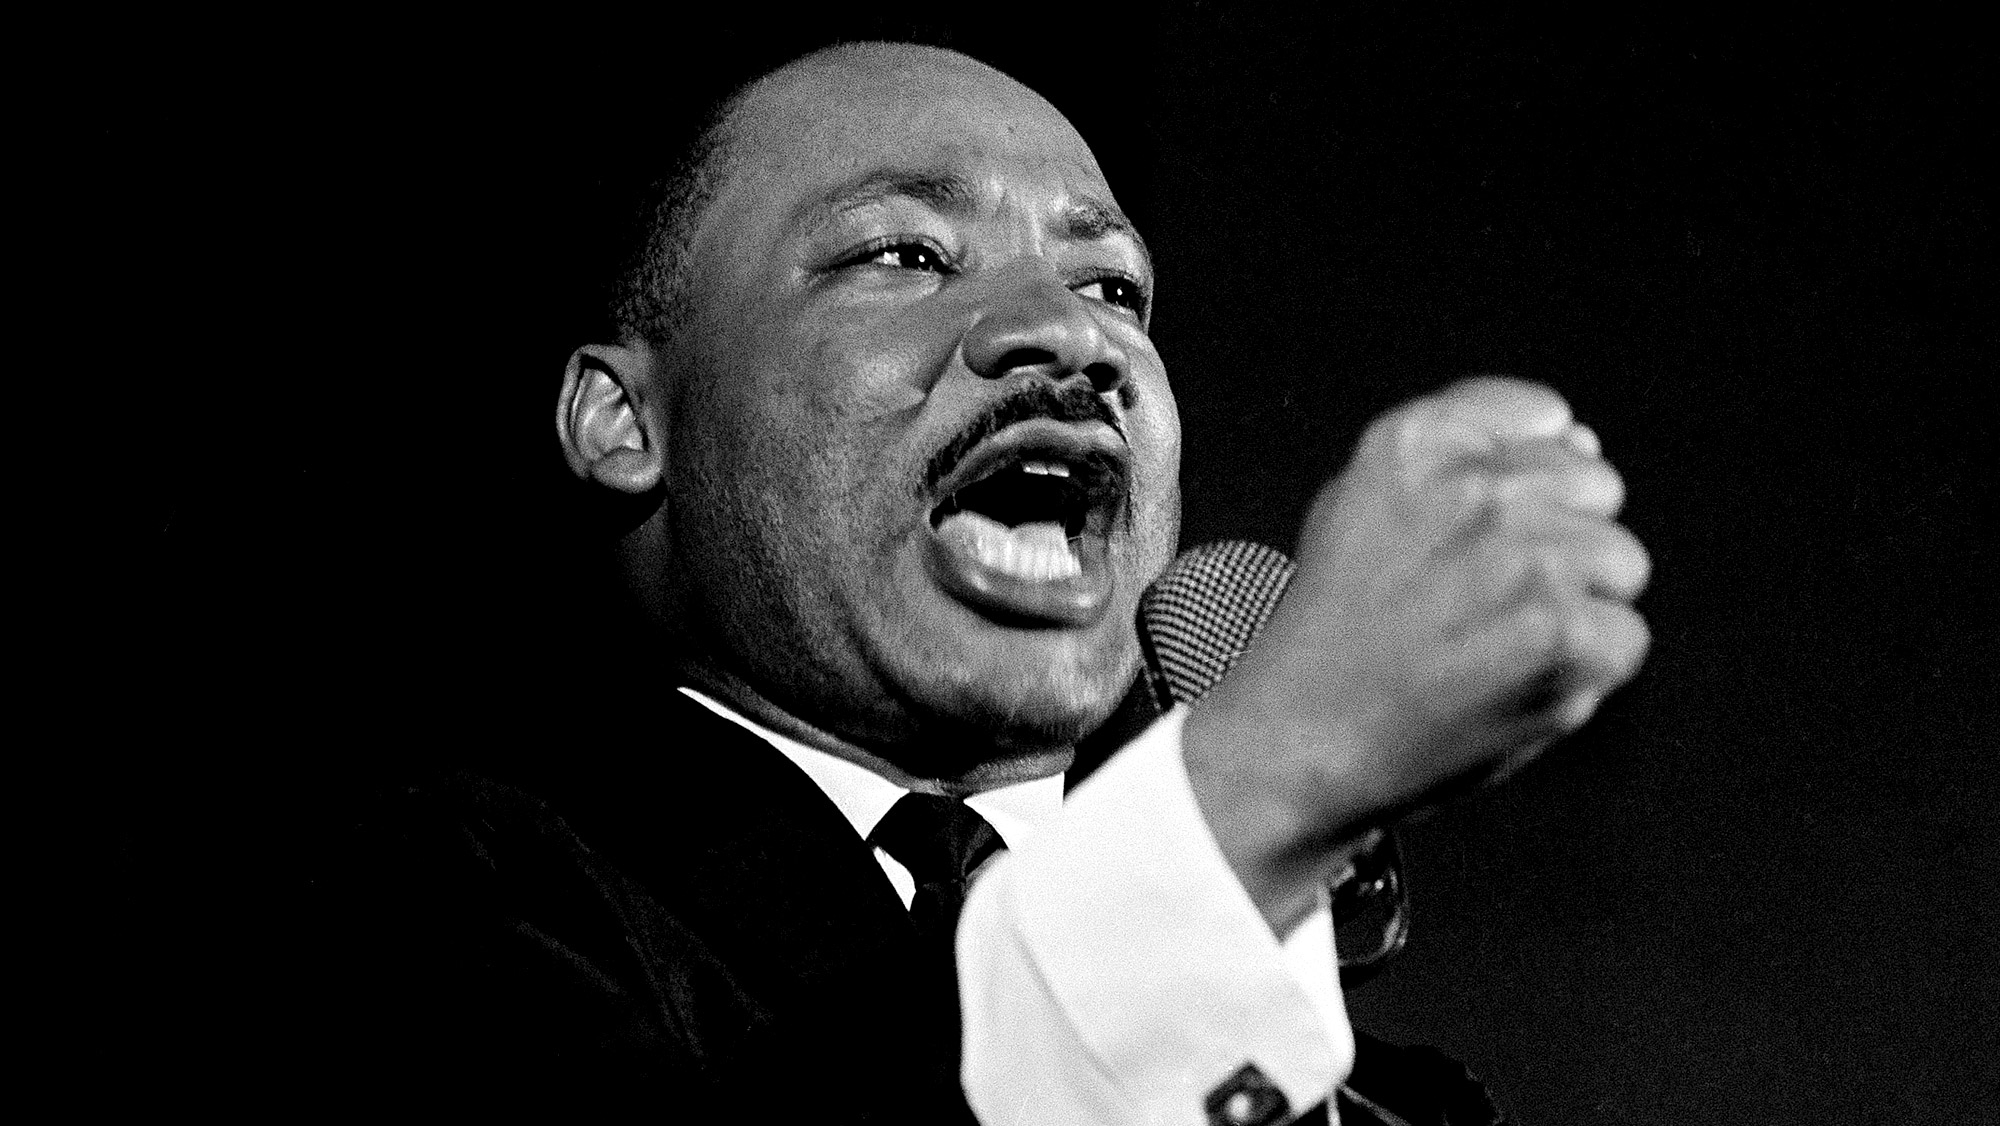 Martin Luther King Jr.'s life in pictures - CNN.com